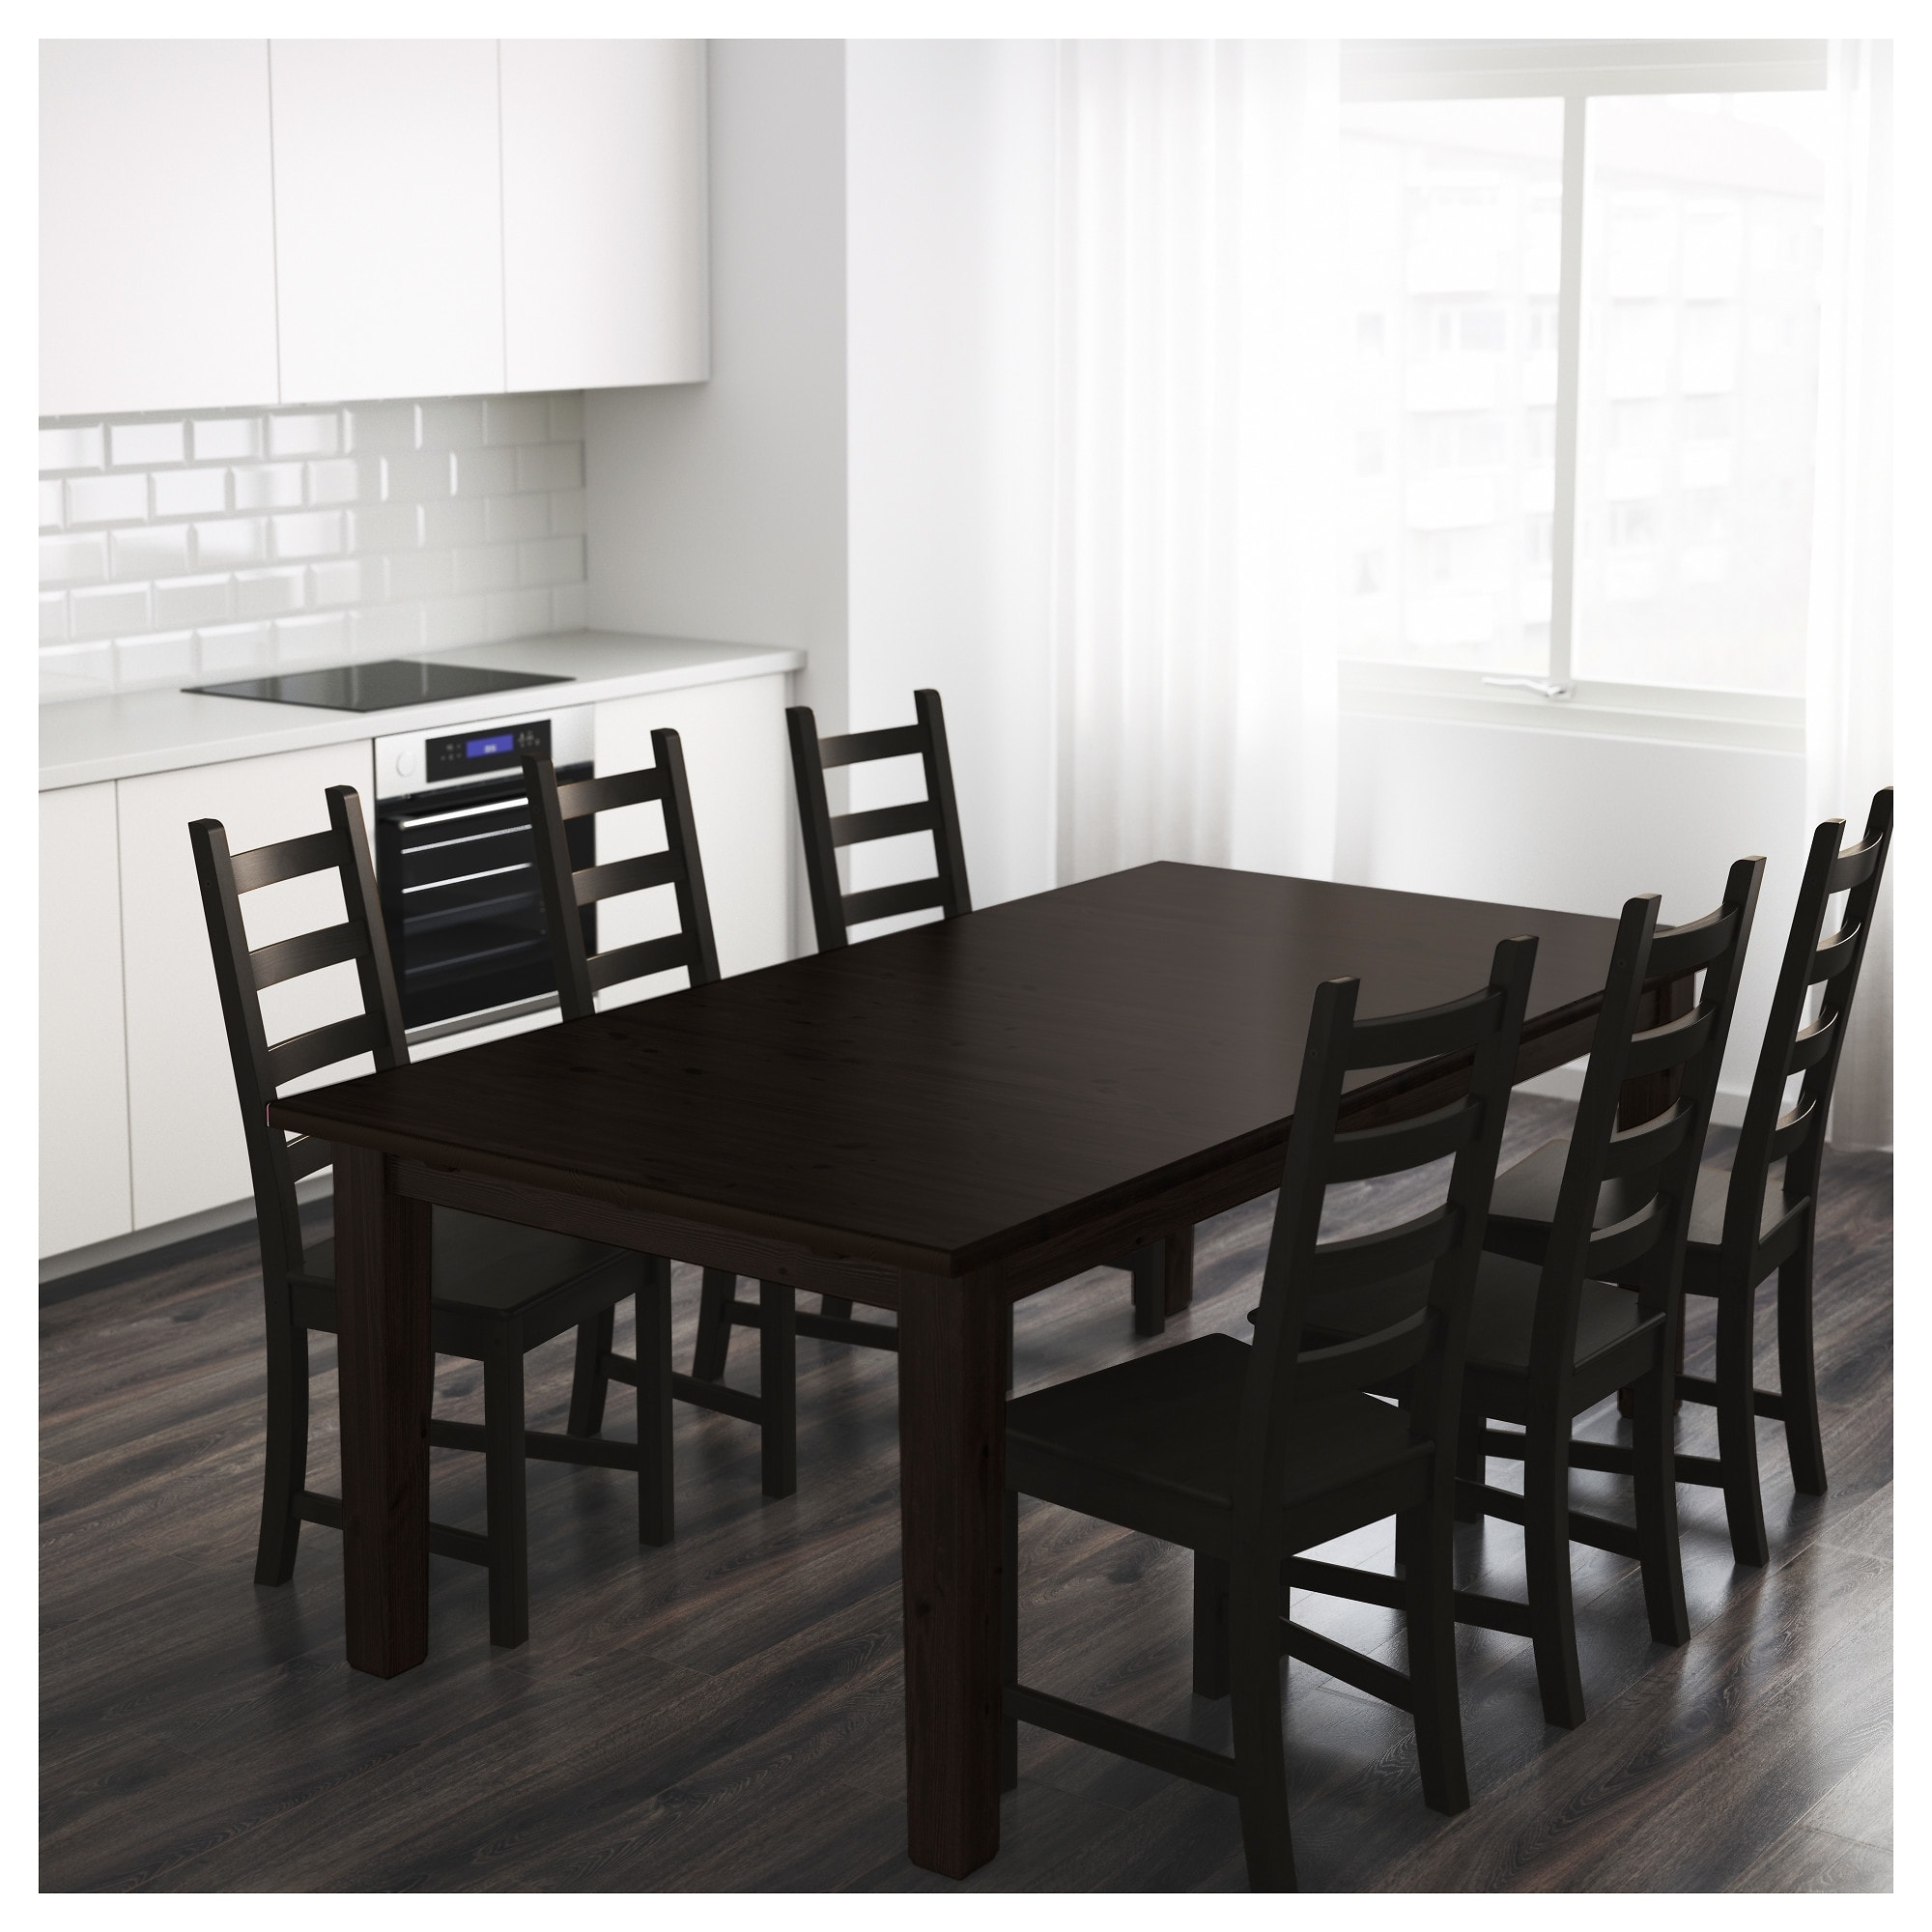 Ikea Round Dining Tables Set With Most Up To Date Stornäs Extendable Table – Ikea (View 5 of 25)